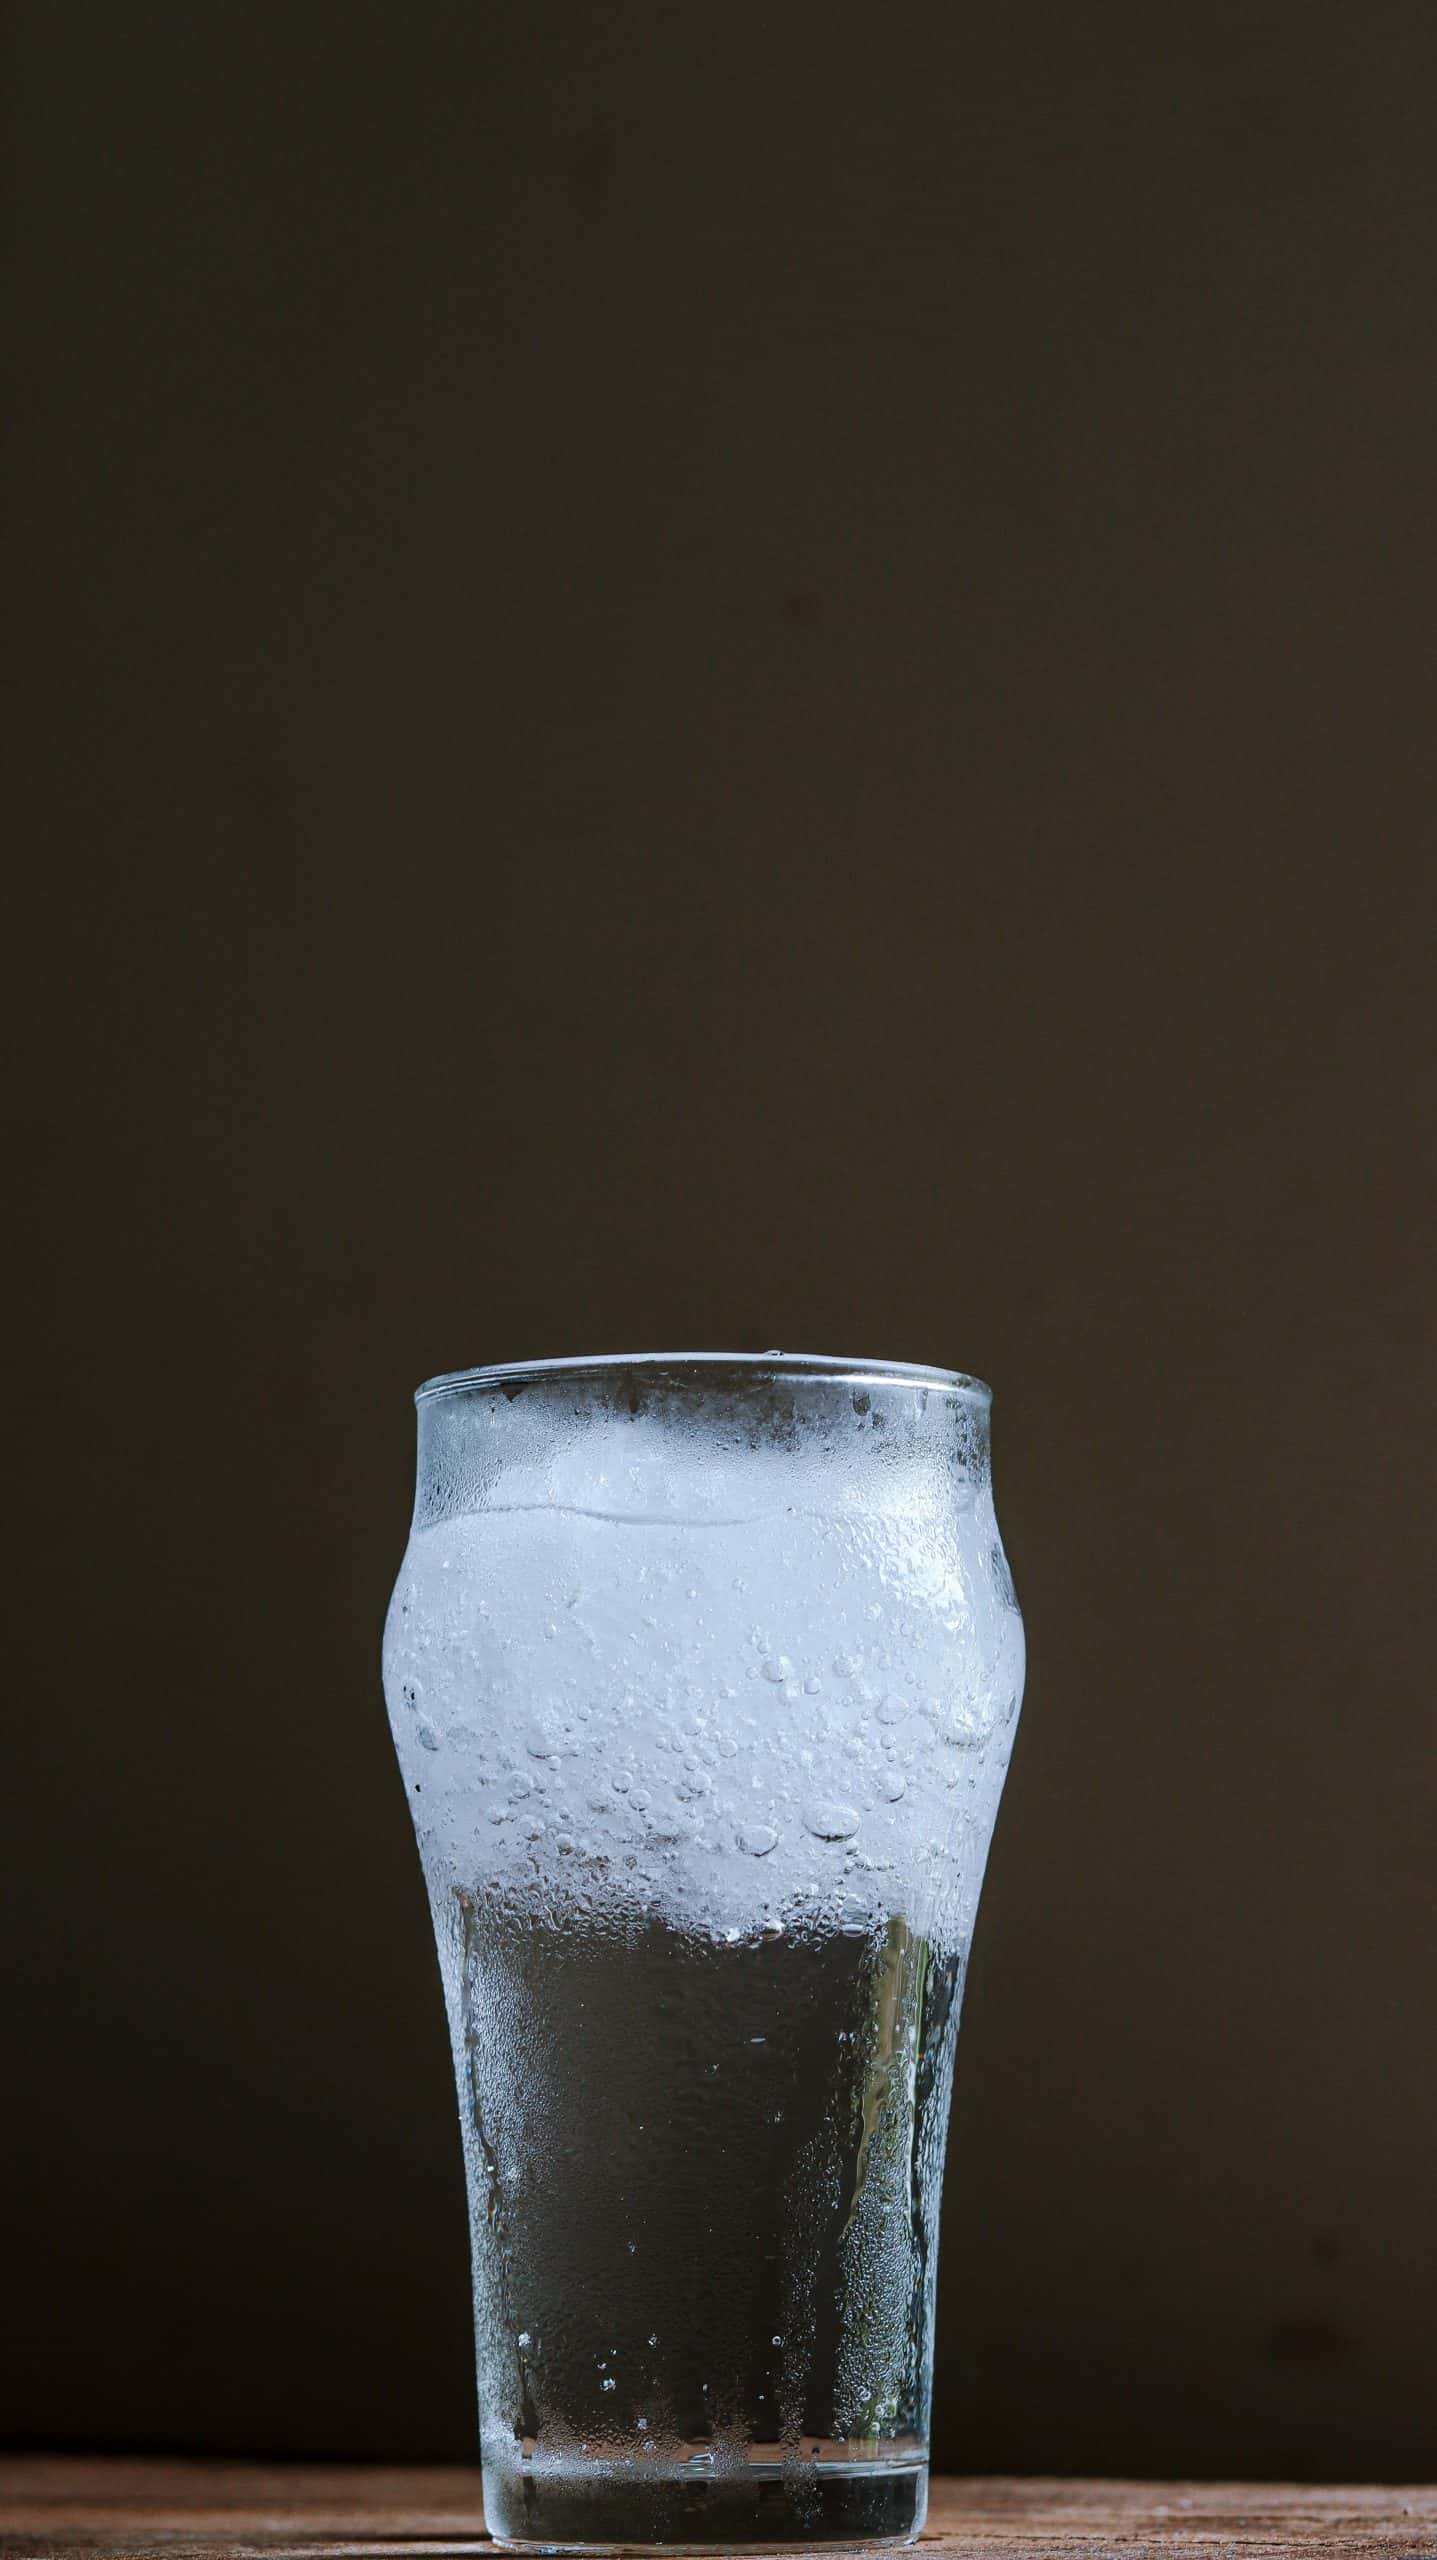 glass of water with ice, against a black background